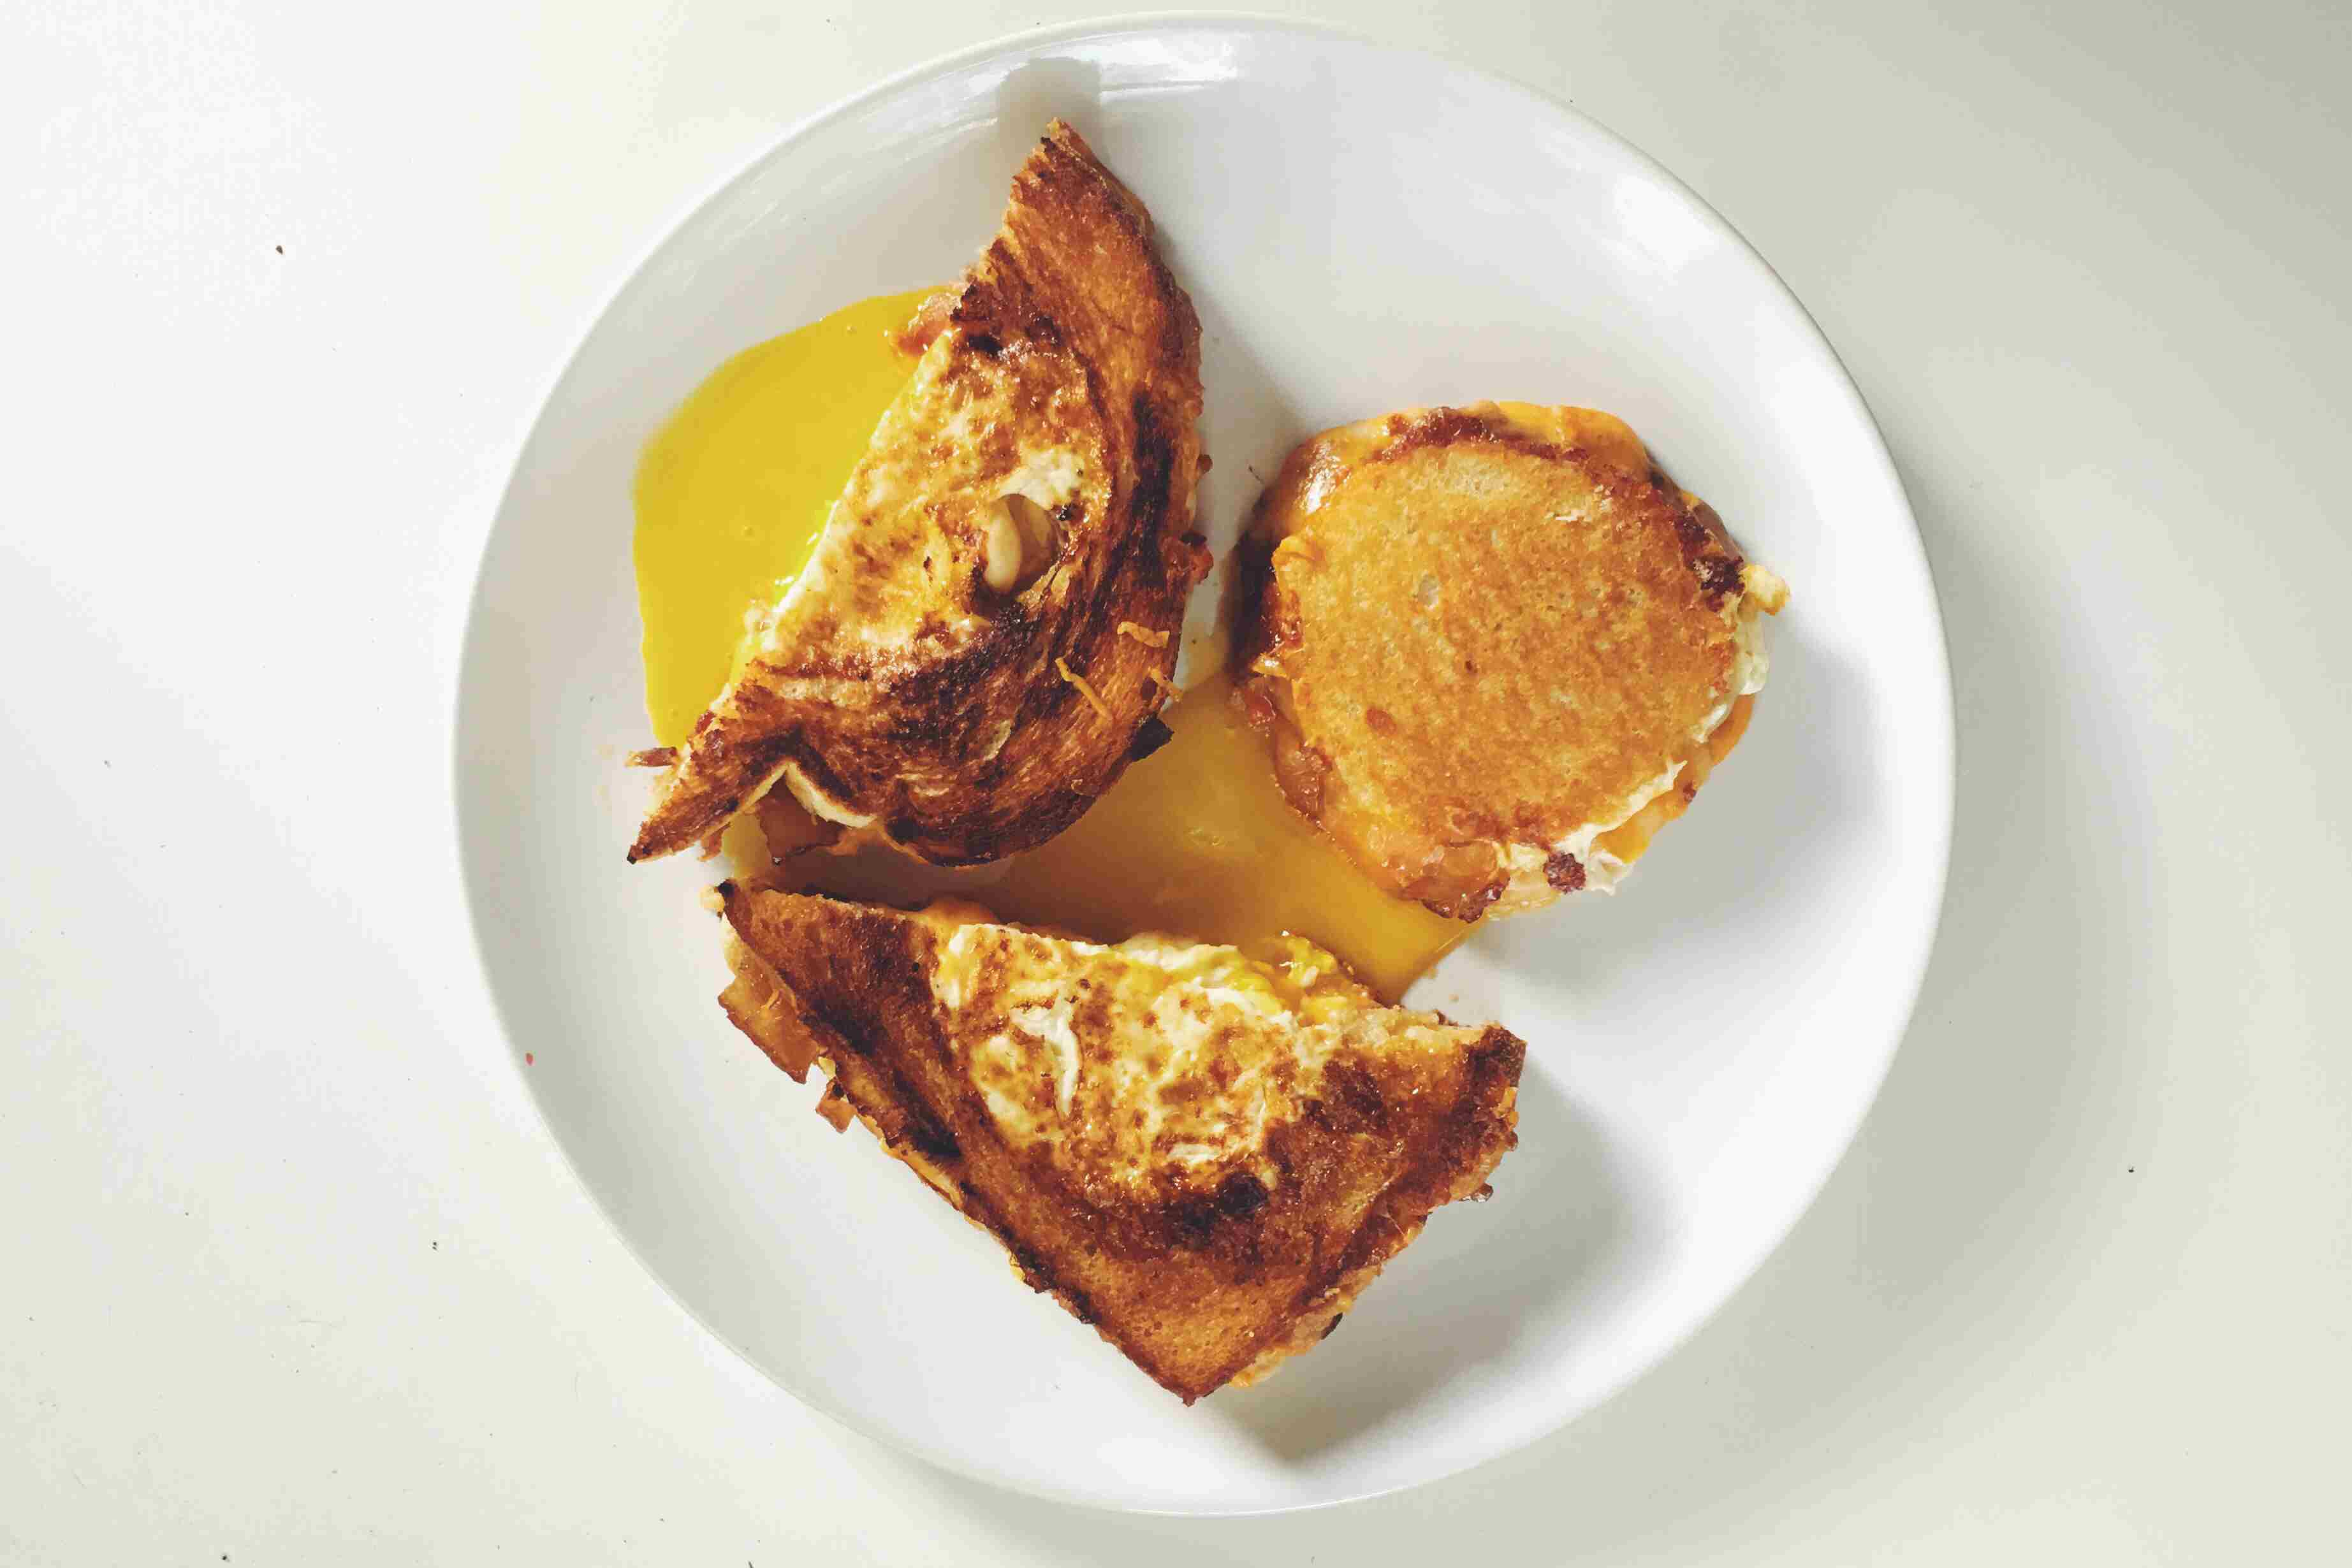 Hole in One Pimento Cheese Grilled Cheese with Candied Bacon